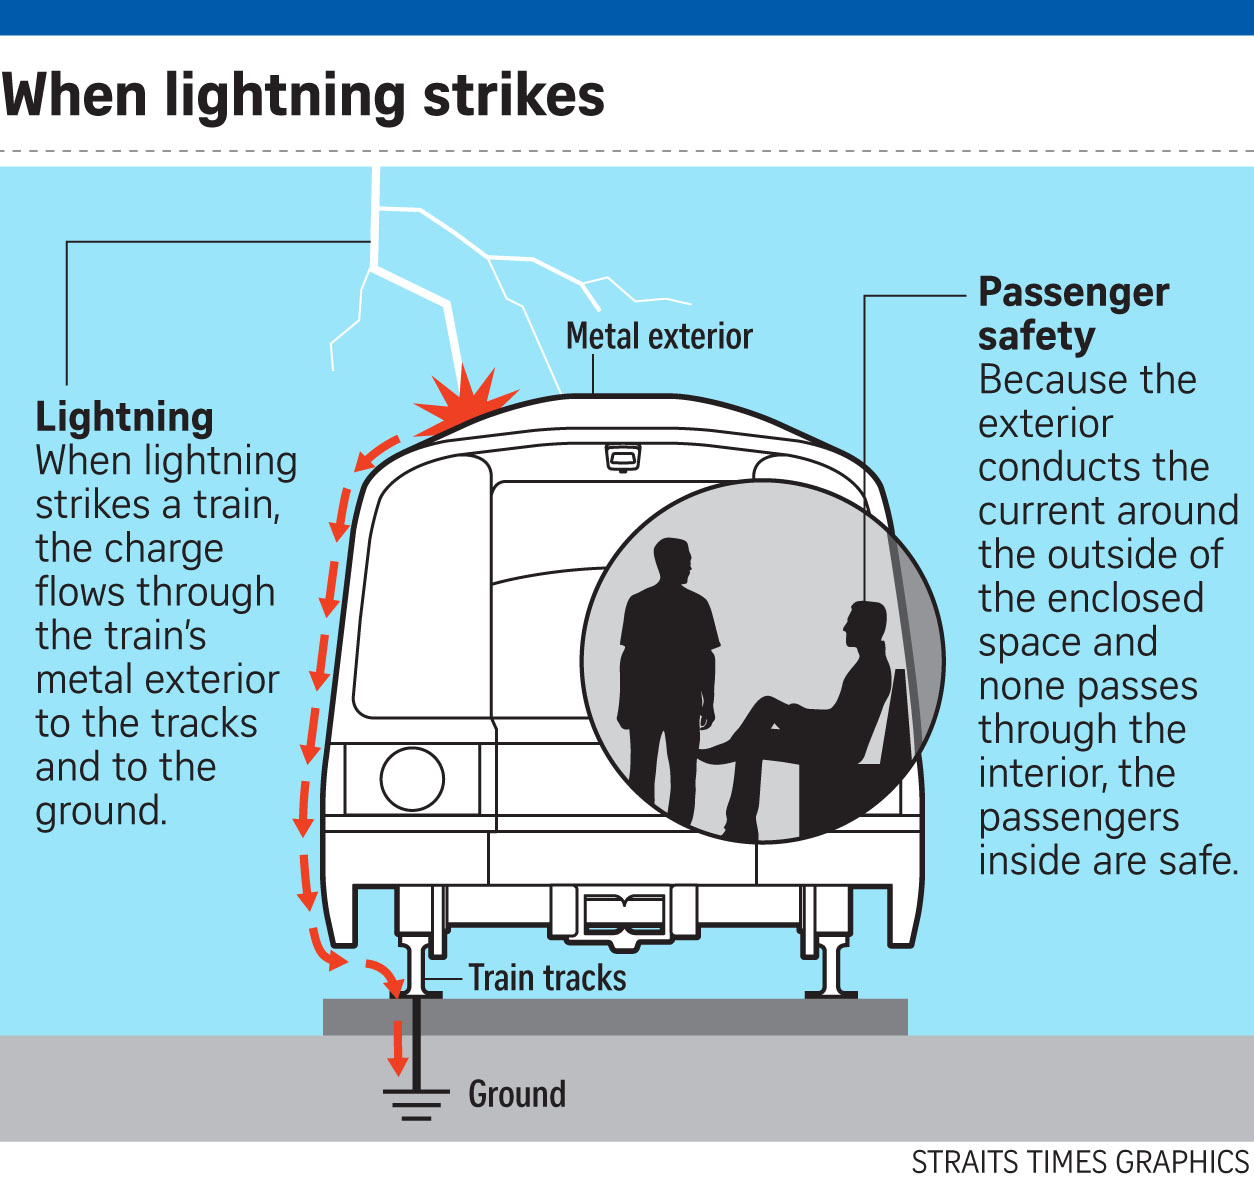 When lightning strikes a train, the charge flowed through the train's metal exterior to the tracks and to the ground.